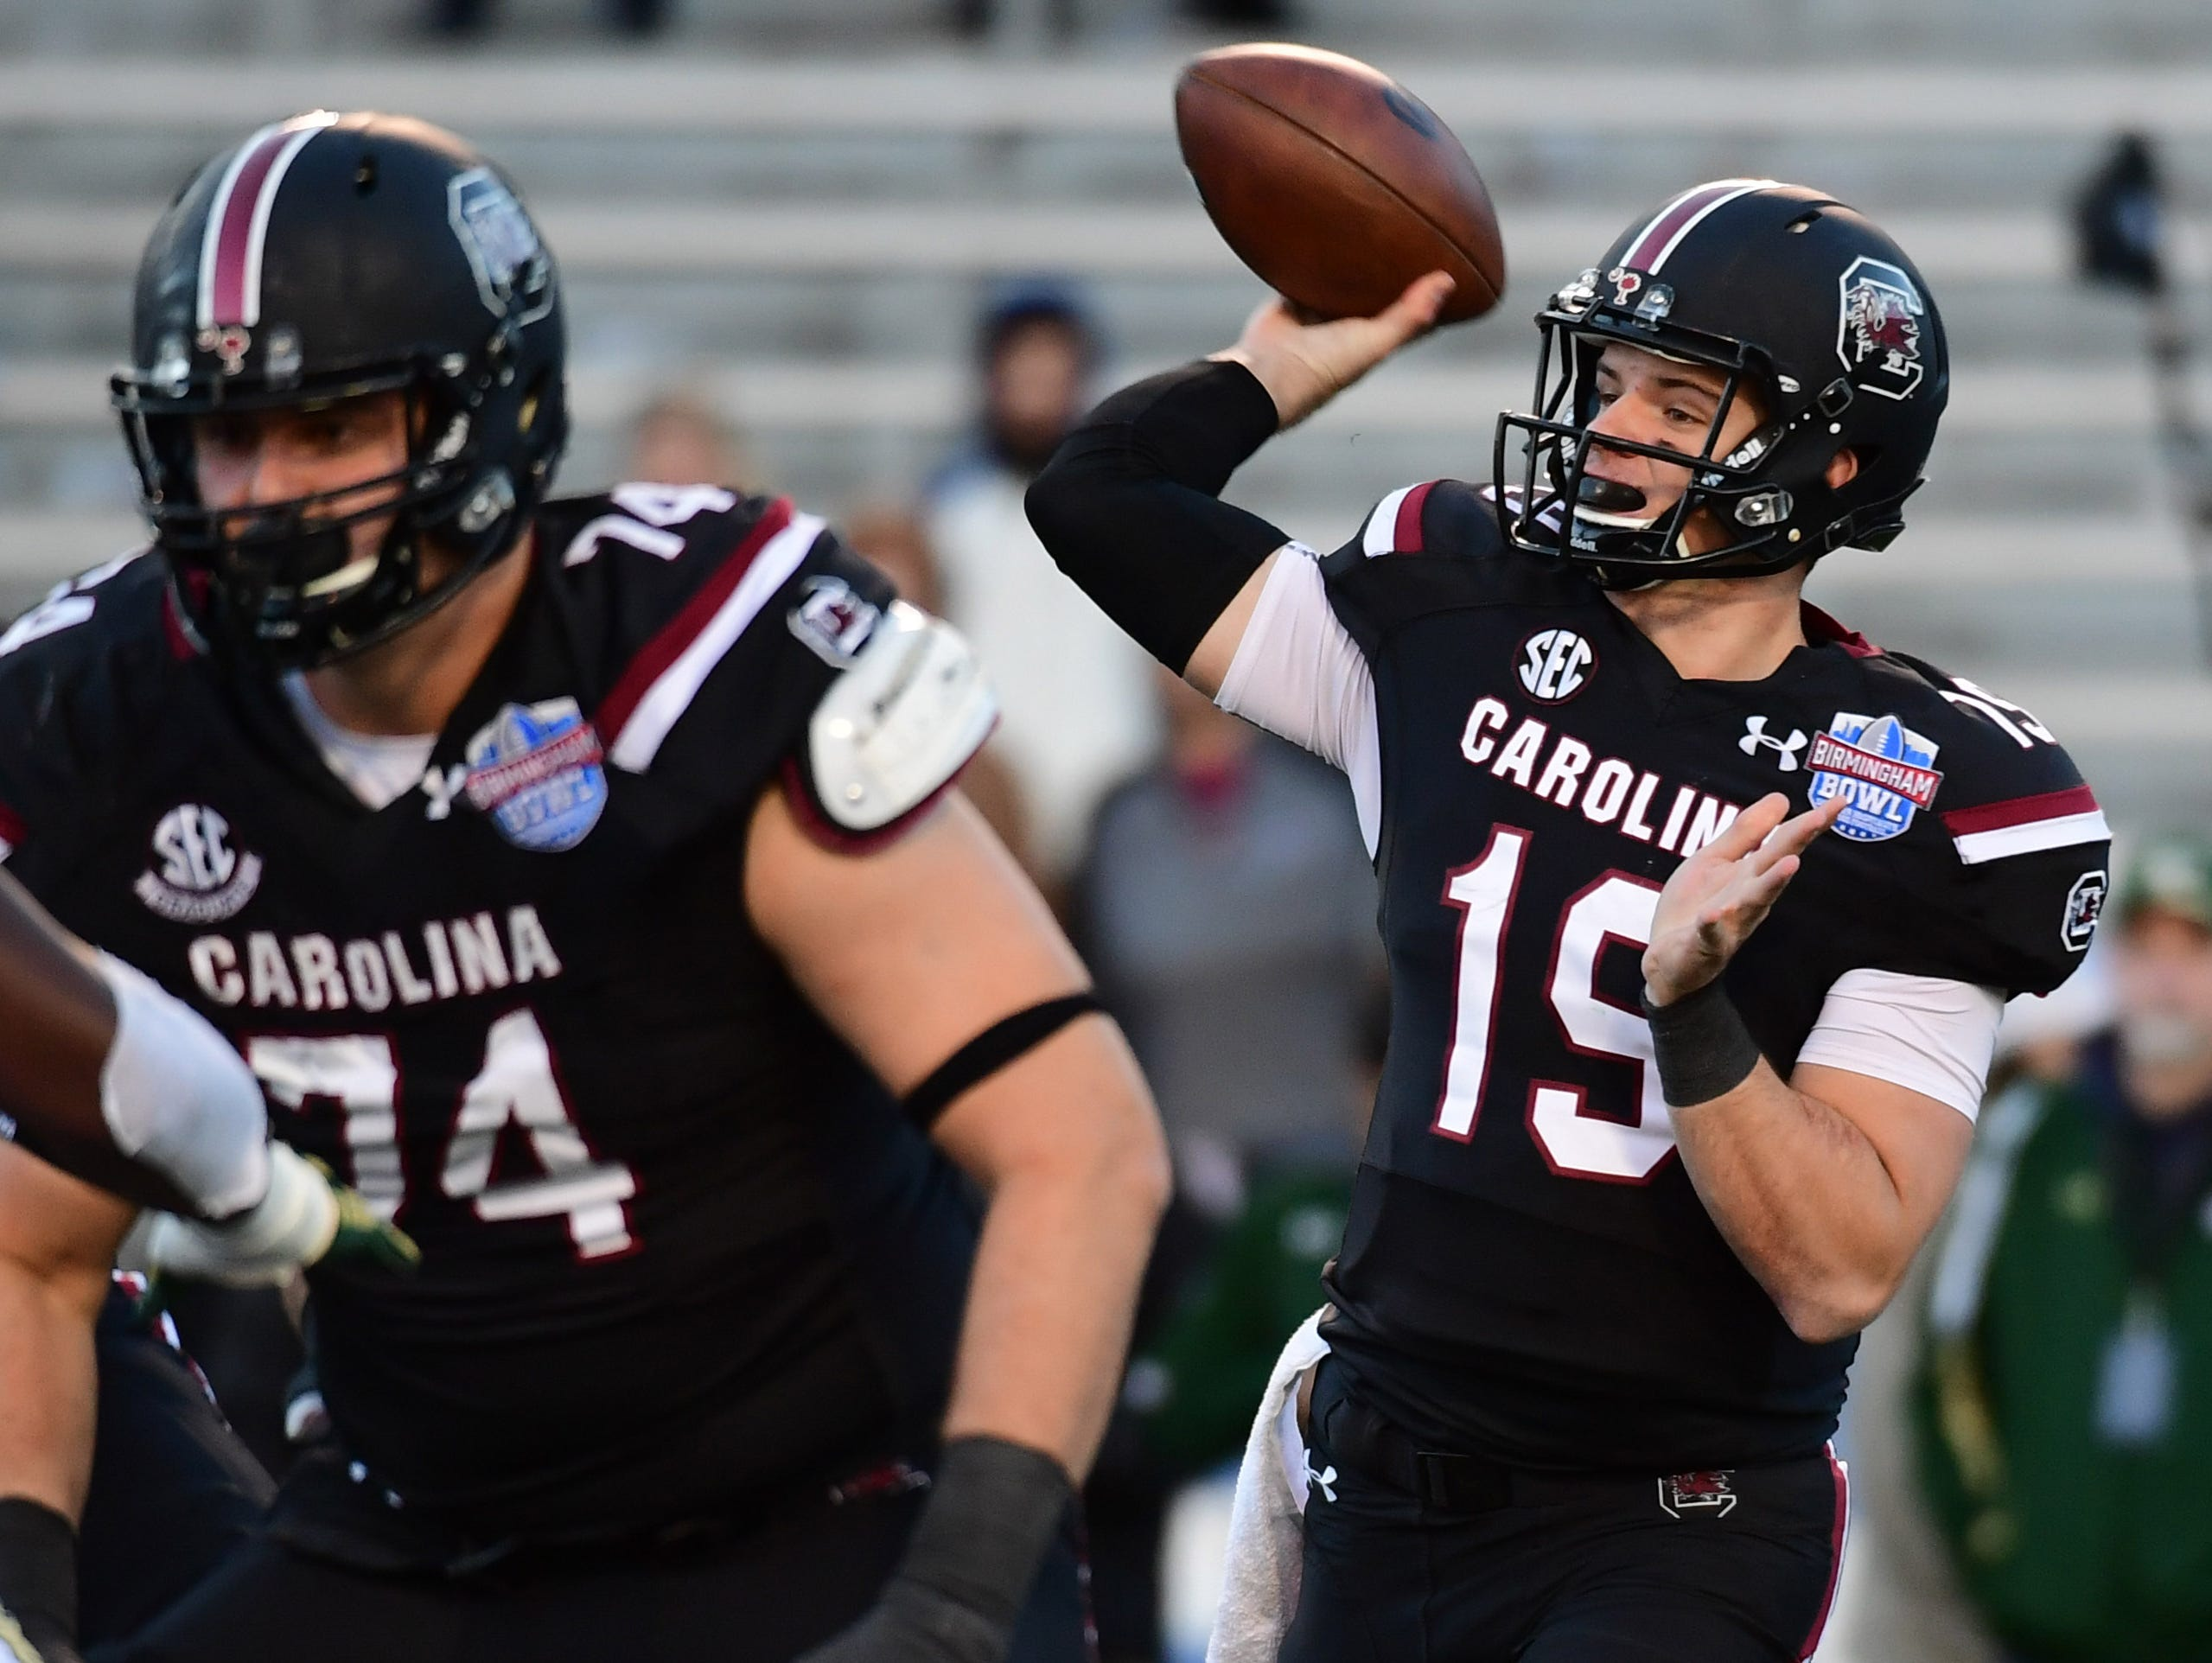 South Carolina Gamecocks quarterback Jake Bentley (19) looks to pass during the fourth quarter against the South Florida Bulls in the 2016 Birmingham Bowl at Legion Field.